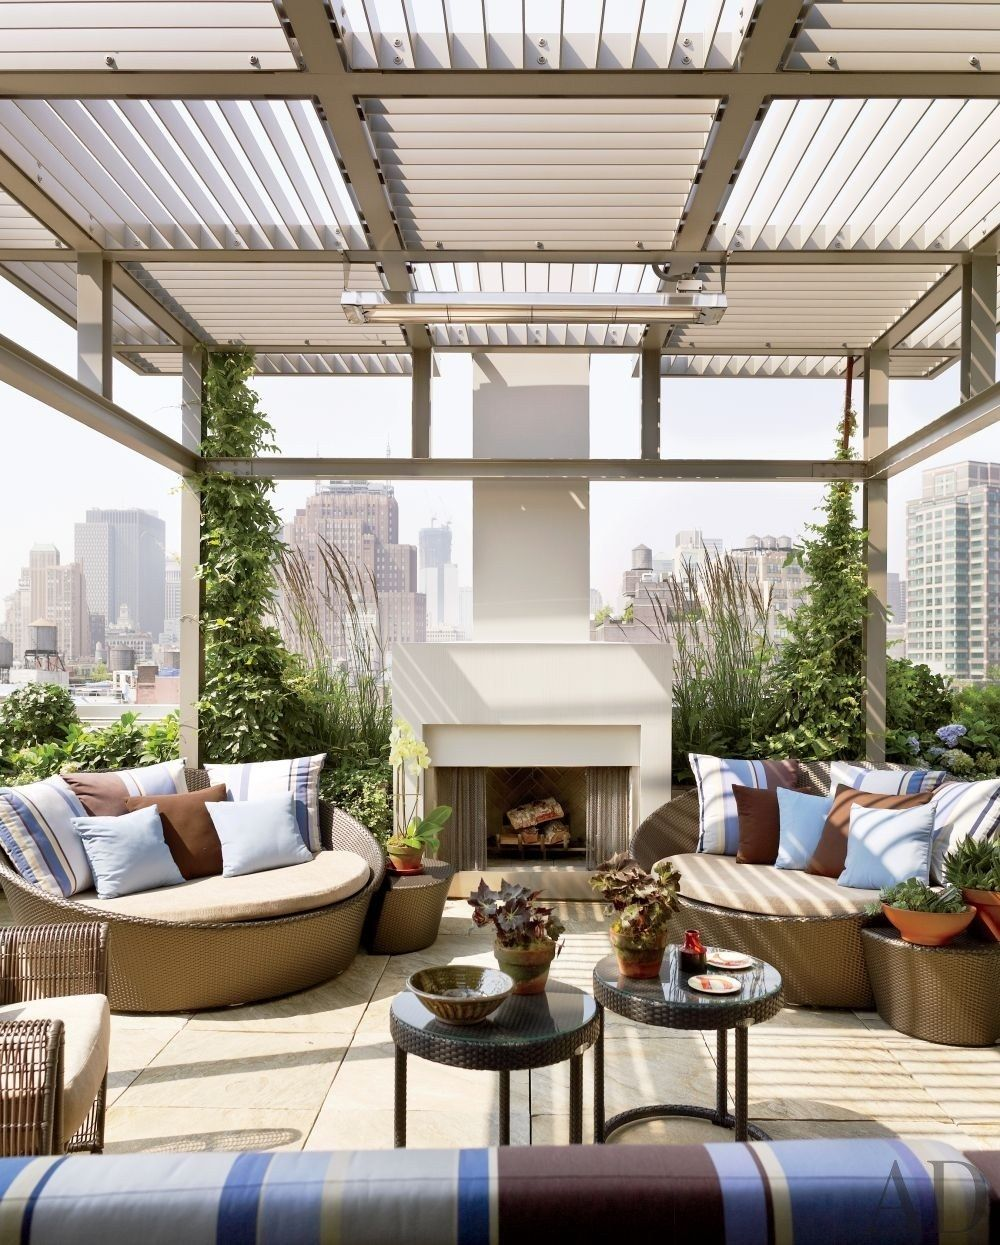 28 Luxurious Indoor-Outdoor Rooms | Architectural digest, Indoor ...